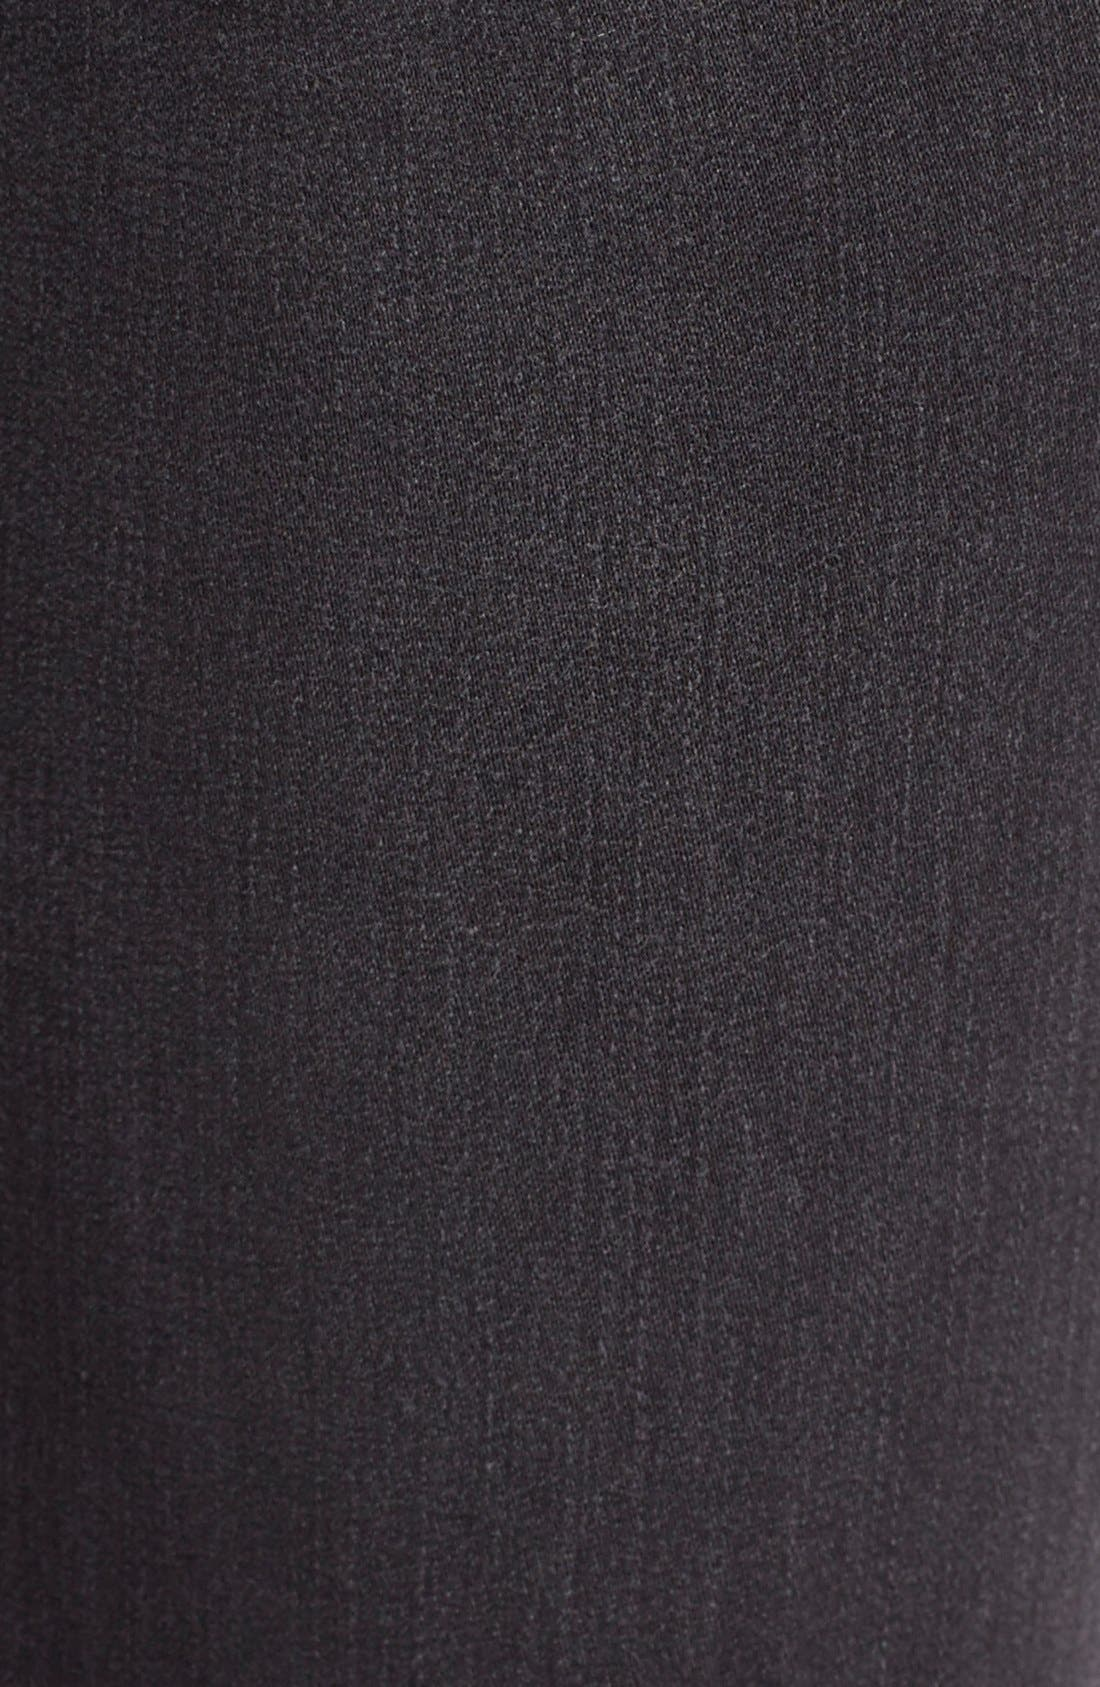 Abby StretchSkinny Jeans,                             Alternate thumbnail 5, color,